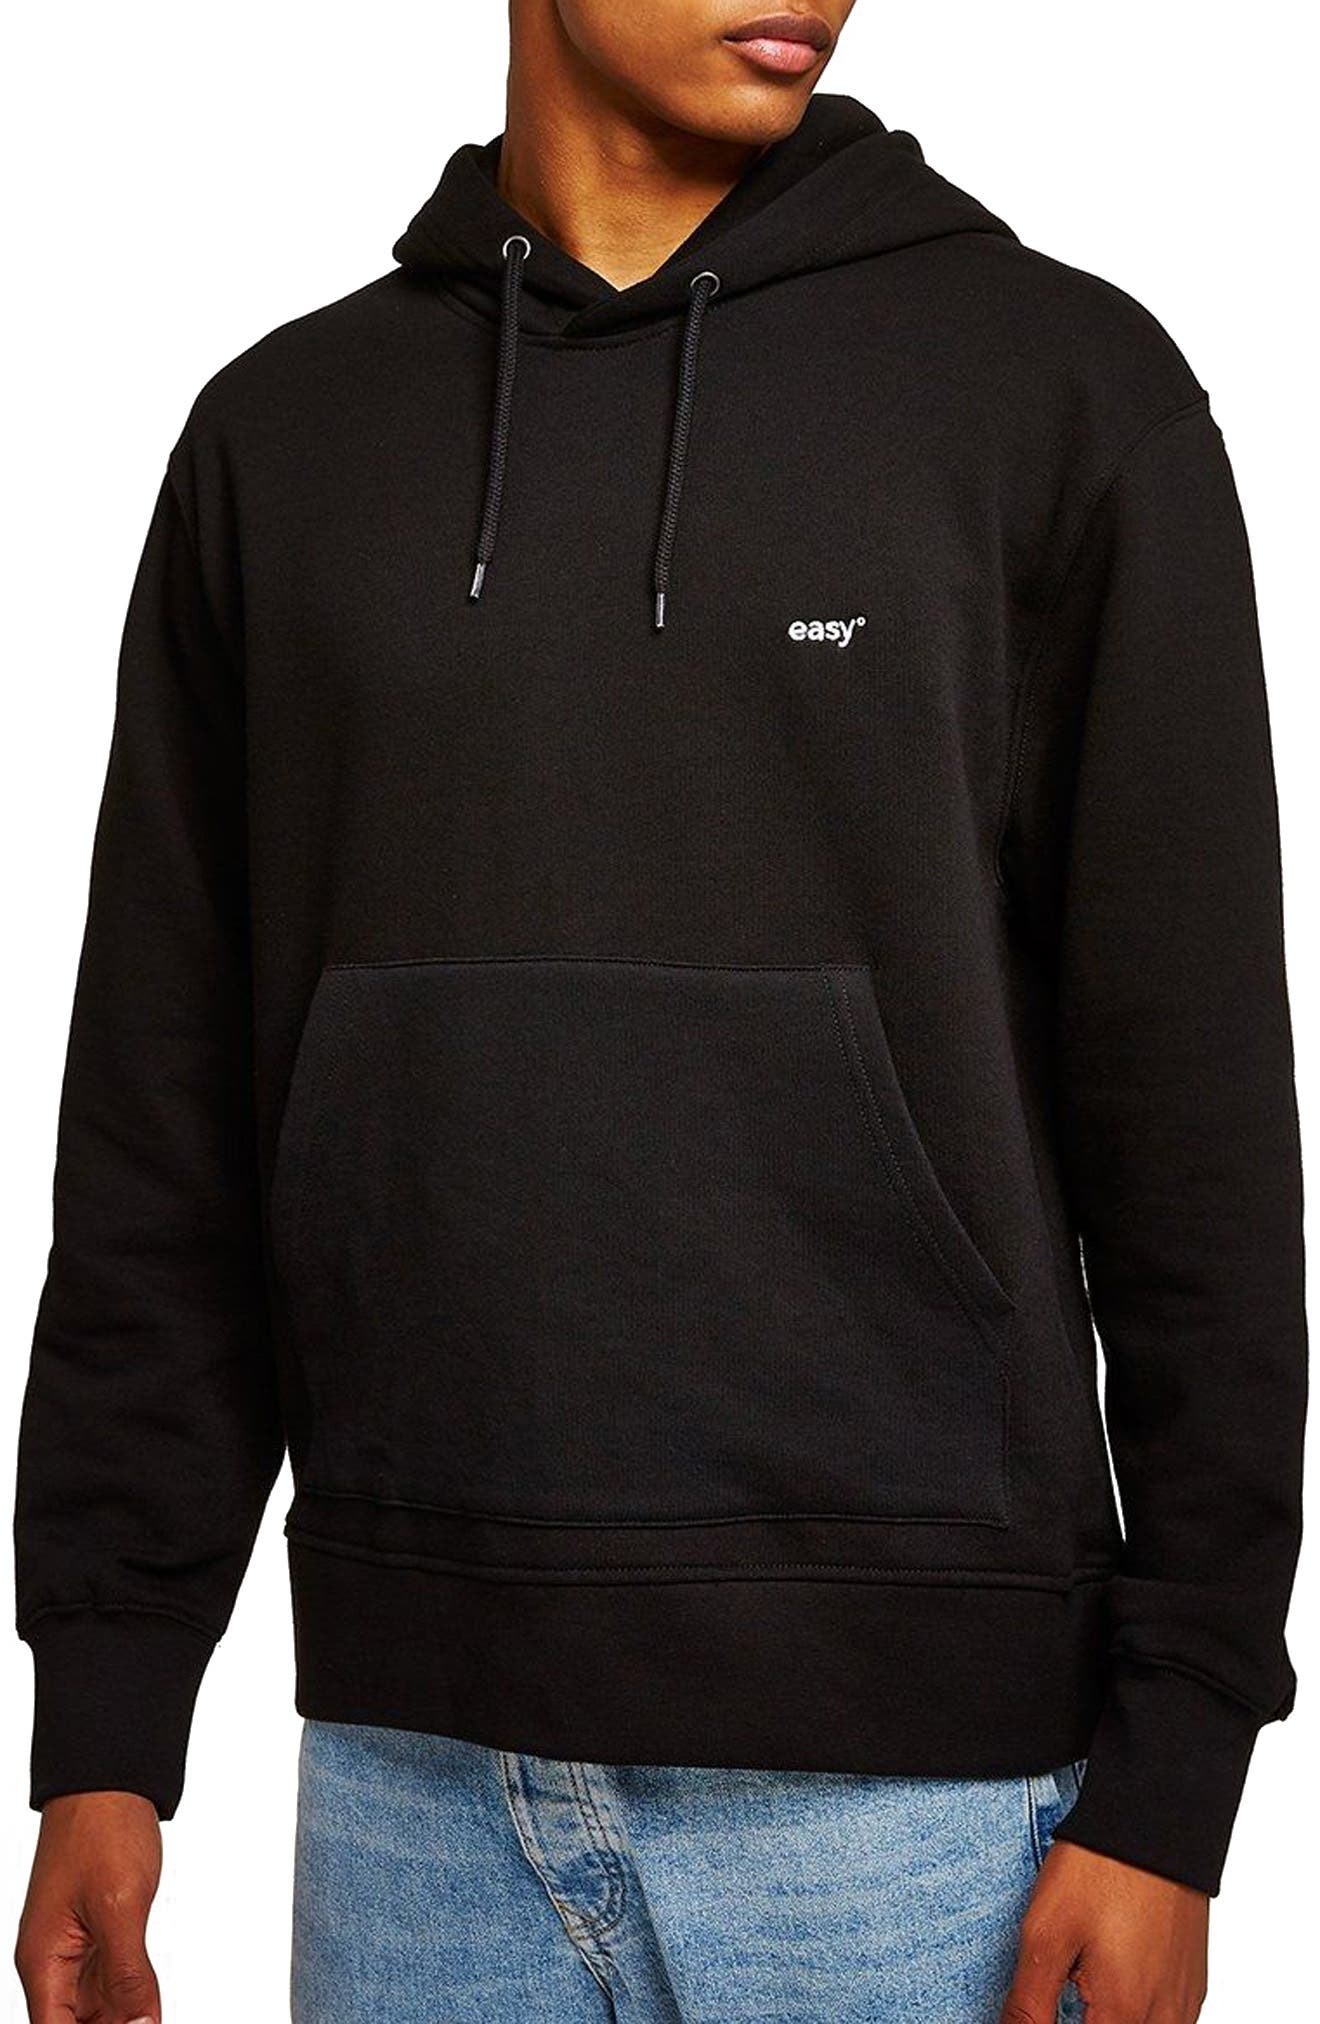 Classic Fit Tristan Easy Embroidered Hoodie,                             Main thumbnail 1, color,